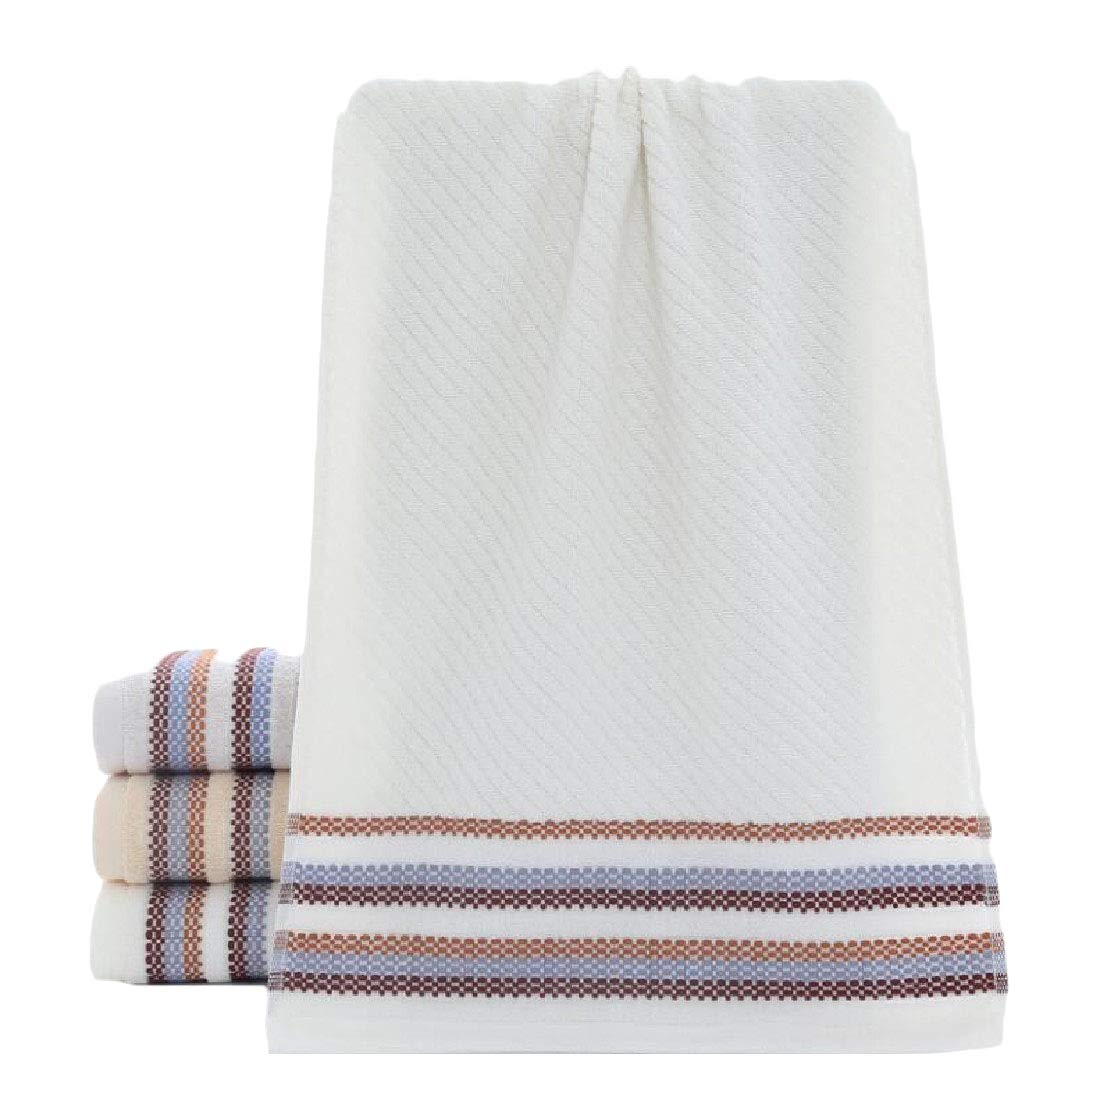 Freely Adult Size Cotton Ultra Absorbent Natural Multi Purpose Ideal for Everyday use Sheer Towels AS3 3475cm